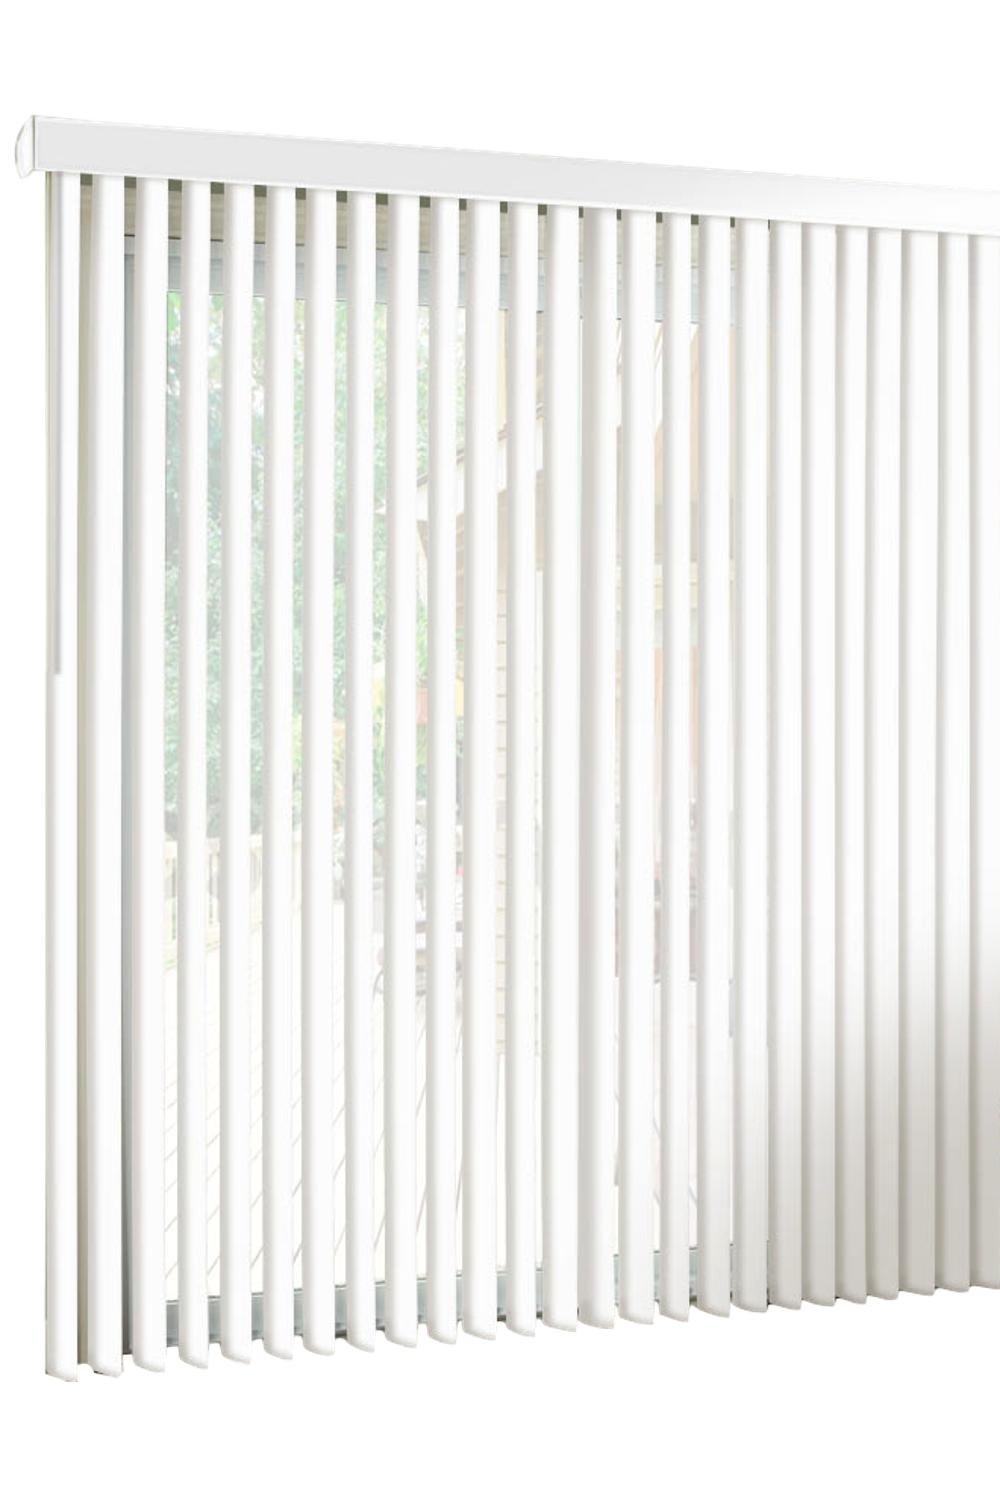 spotblinds White-Cordless-Custom-Made, Premium PVC Vertical Blinds-Blocks Sunlight-Assembled in The US-Exact Width & Length from 67'' Wide to 94'' Long. This Listing is (67'' W x 83'' L) Vertical Blind. by spotblinds